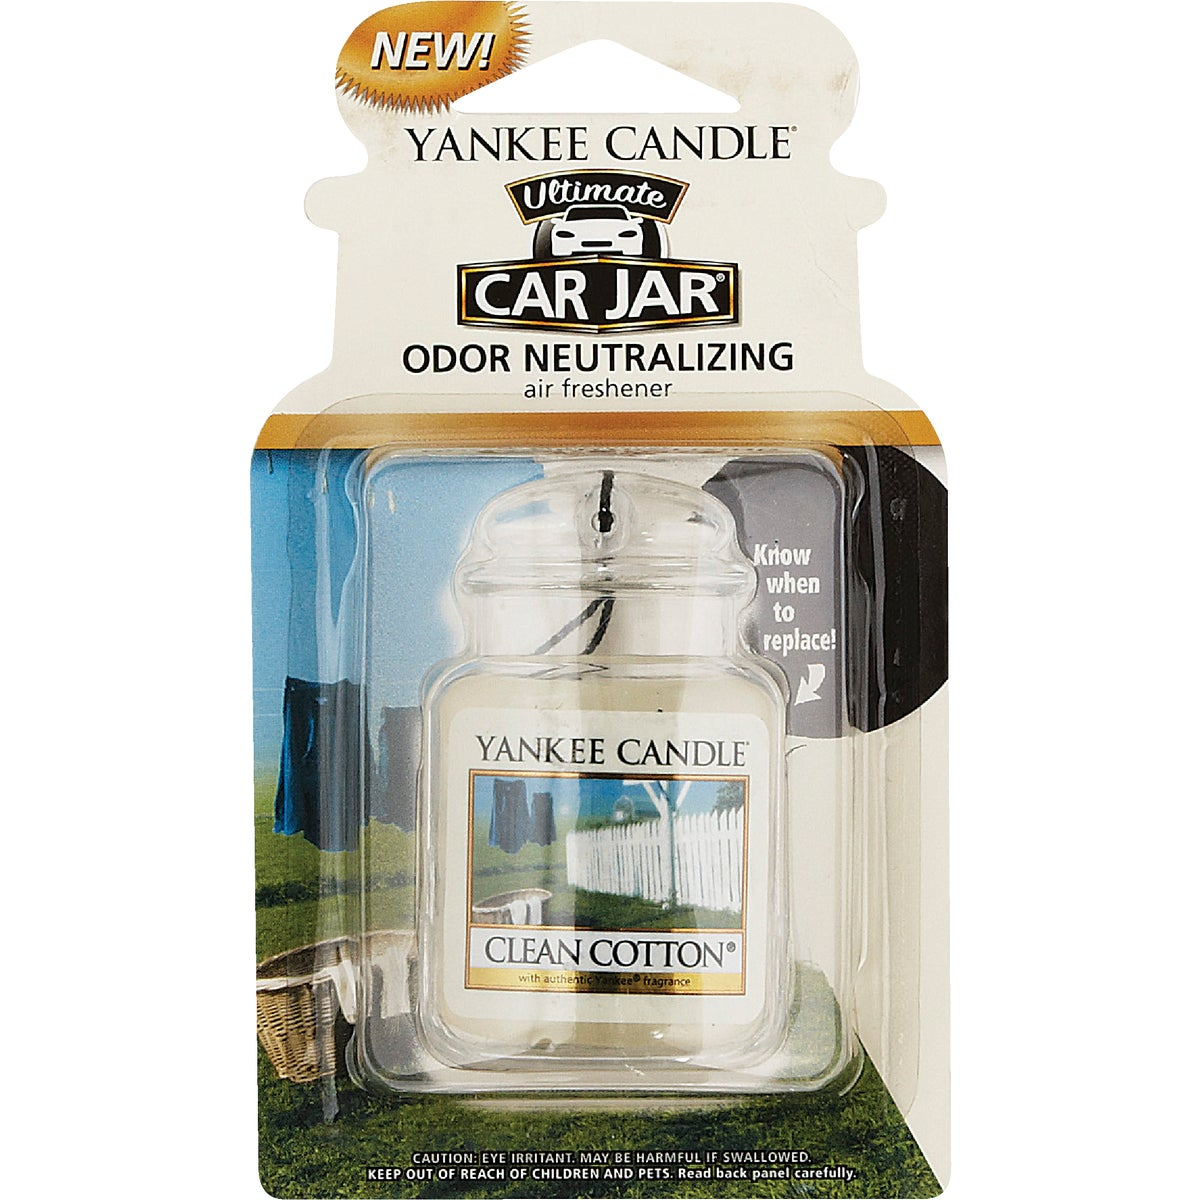 CLN COTTN CAR FRESHENER